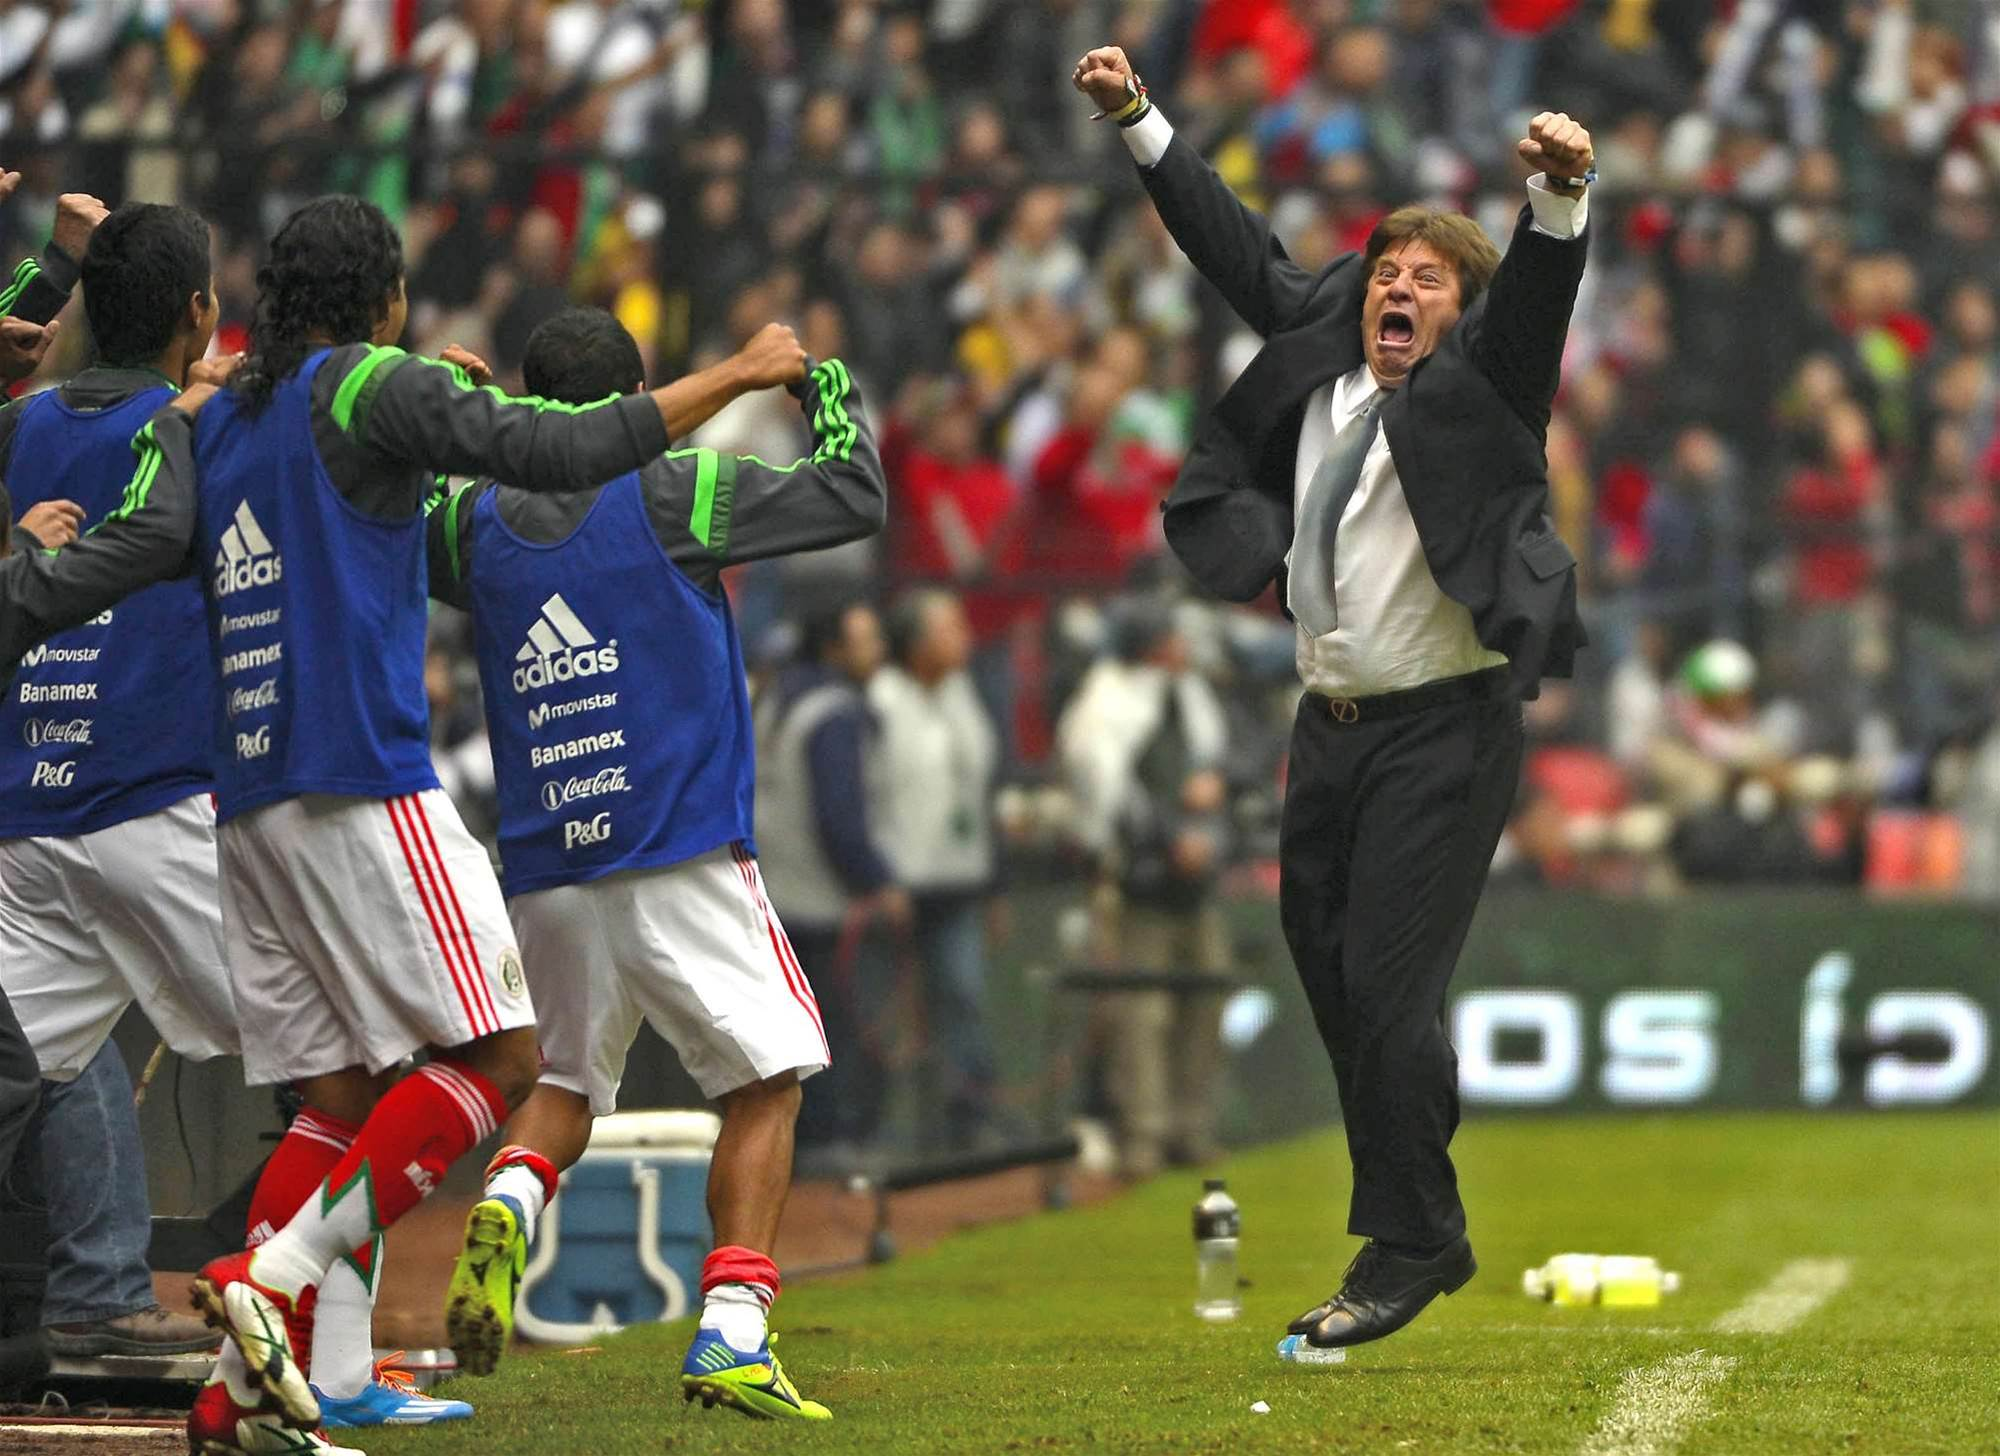 Mexico coach says team owes the fans